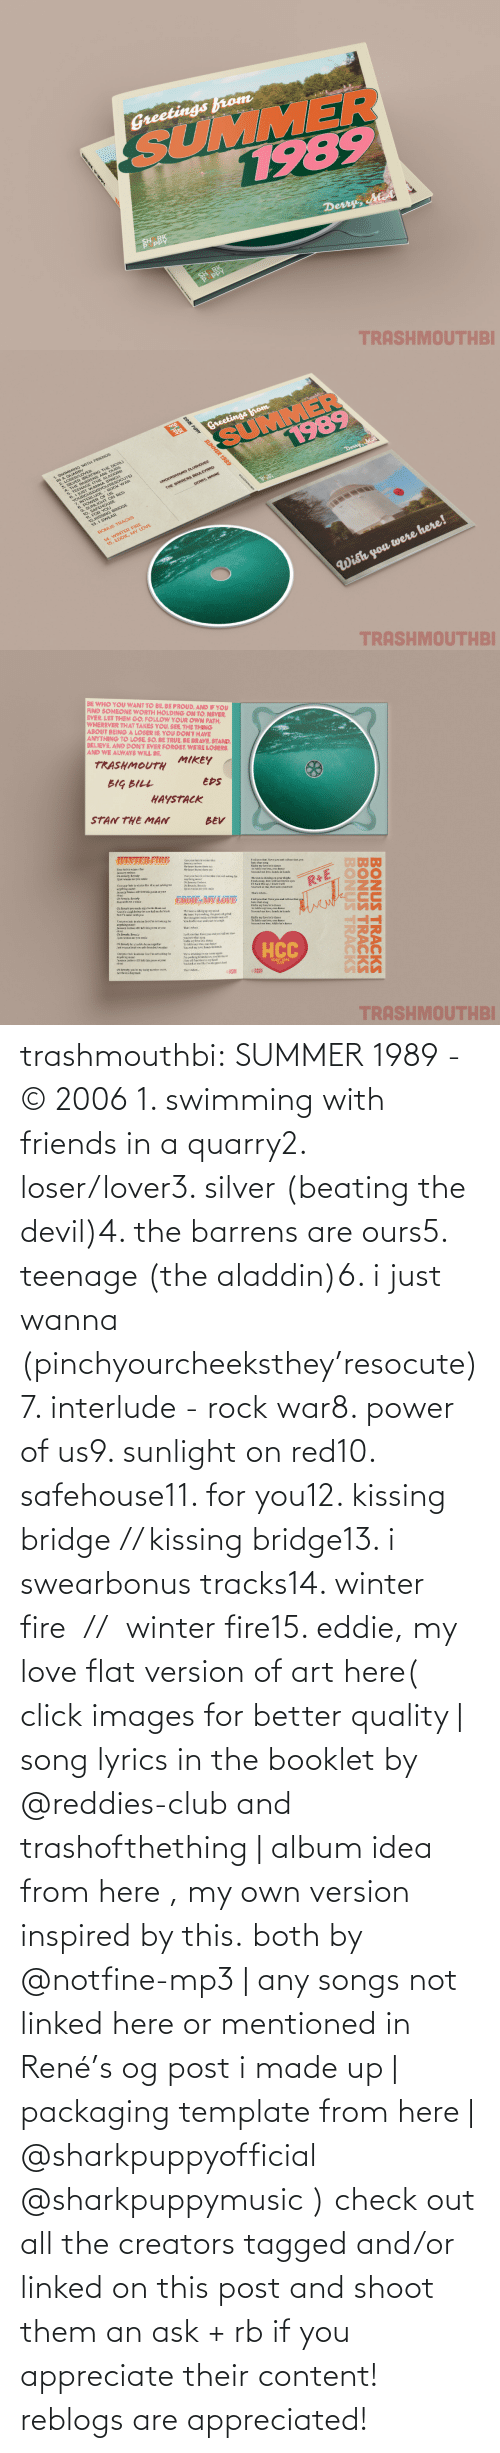 rock: trashmouthbi: SUMMER 1989 - © 2006 1. swimming with friends in a quarry2. loser/lover3. silver (beating the devil)4. the barrens are ours5. teenage (the aladdin)6. i just wanna (pinchyourcheeksthey'resocute)7. interlude - rock war8. power of us9. sunlight on red10. safehouse11. for you12. kissing bridge // kissing bridge13. i swearbonus tracks14. winter fire  //  winter fire15. eddie, my love flat version of art here( click images for better quality | song lyrics in the booklet by @reddies-club​ and trashofthething | album idea from here , my own version inspired by this. both by @notfine-mp3​ | any songs not linked here or mentioned in René's og post i made up | packaging template from here | @sharkpuppyofficial​ @sharkpuppymusic​ ) check out all the creators tagged and/or linked on this post and shoot them an ask + rb if you appreciate their content! reblogs are appreciated!